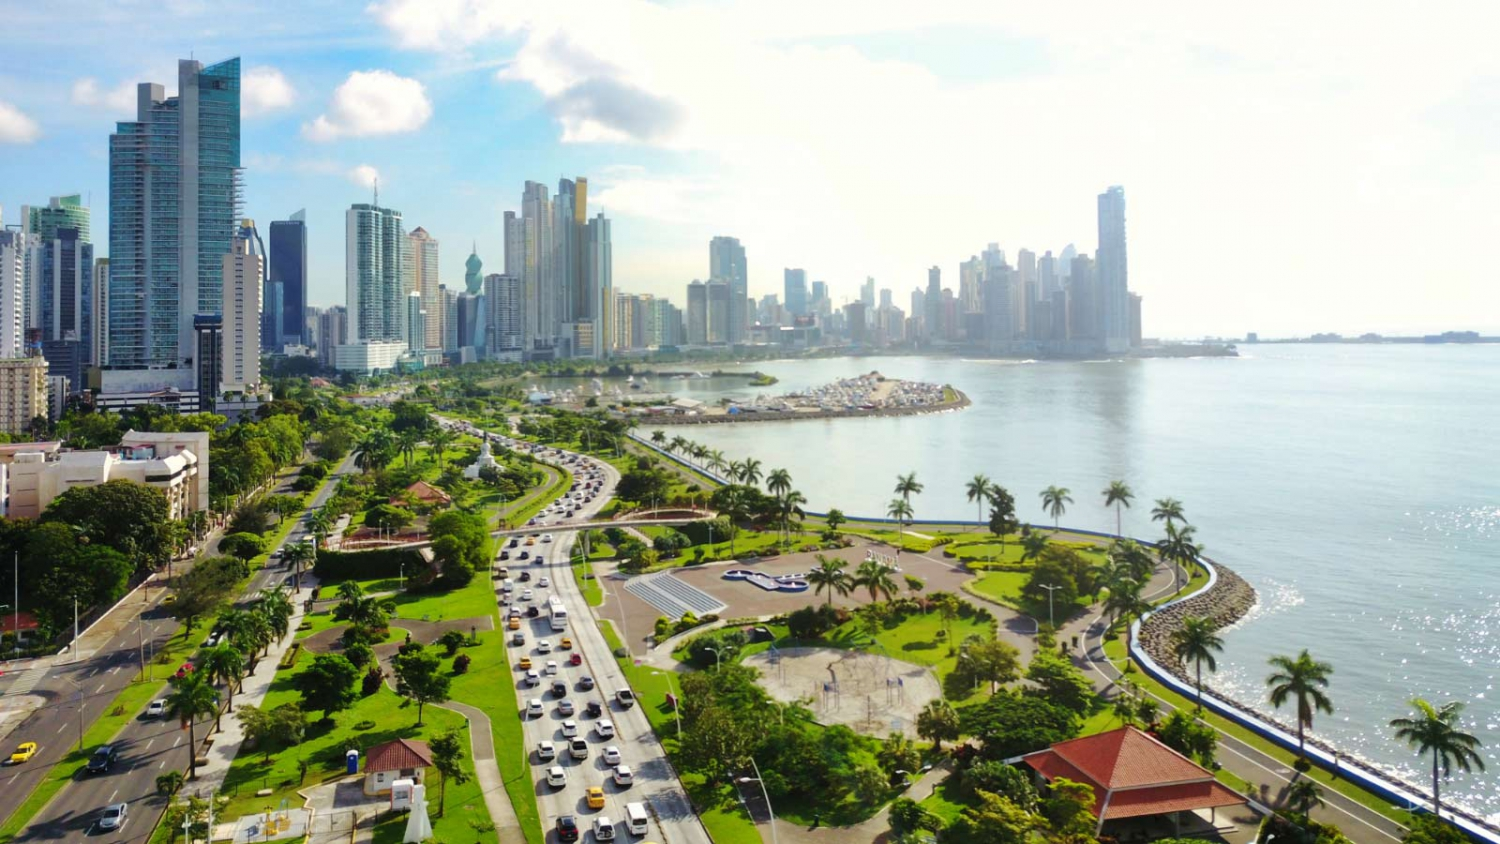 Panama, among the best destinations to visit in 2019, according to The New York Times